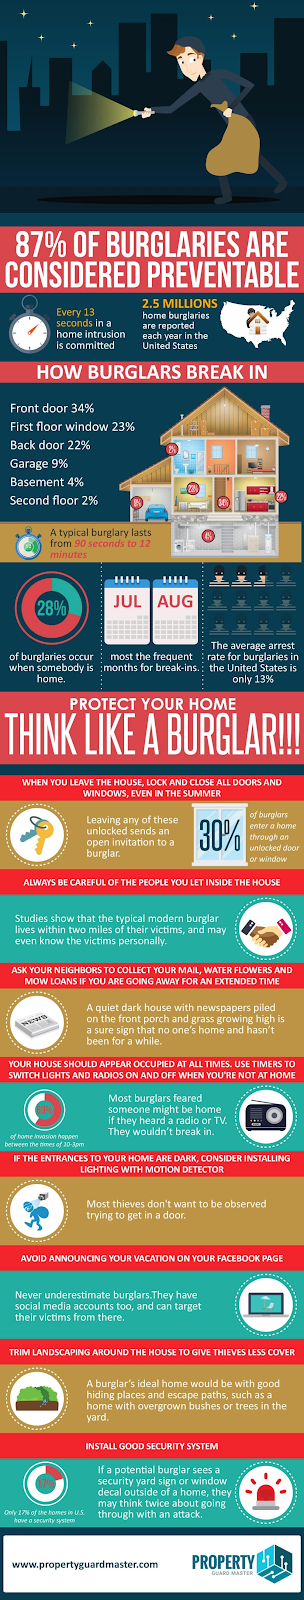 Household Burglaries - Ways to Secure Your New Home in The Country